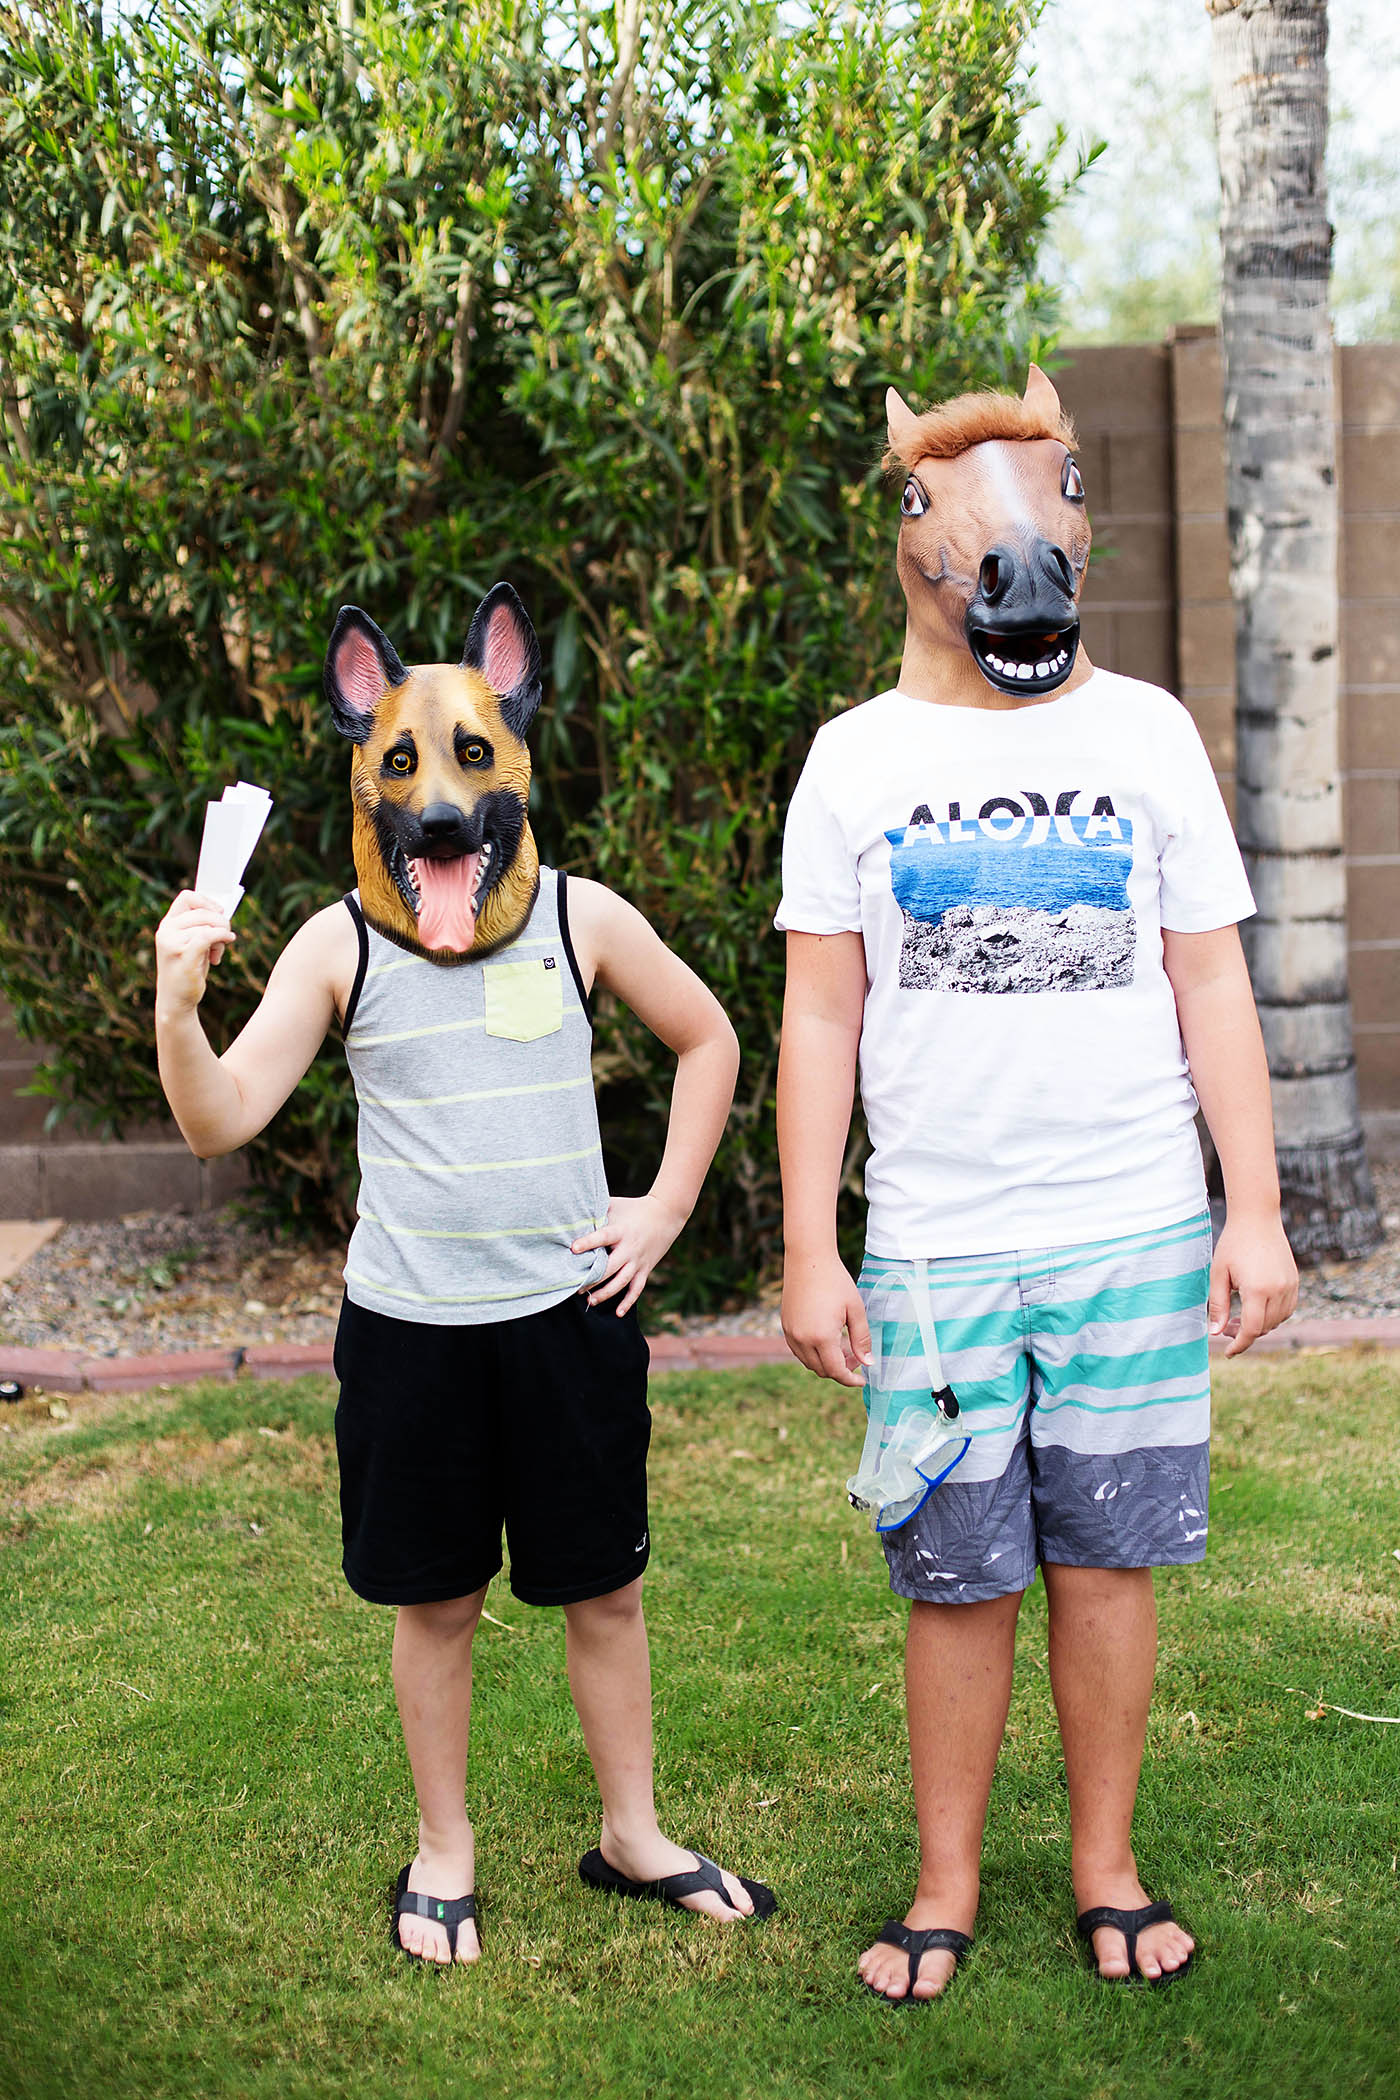 """Hot Dog"" and ""Sea horse"" costumes - very punny!"